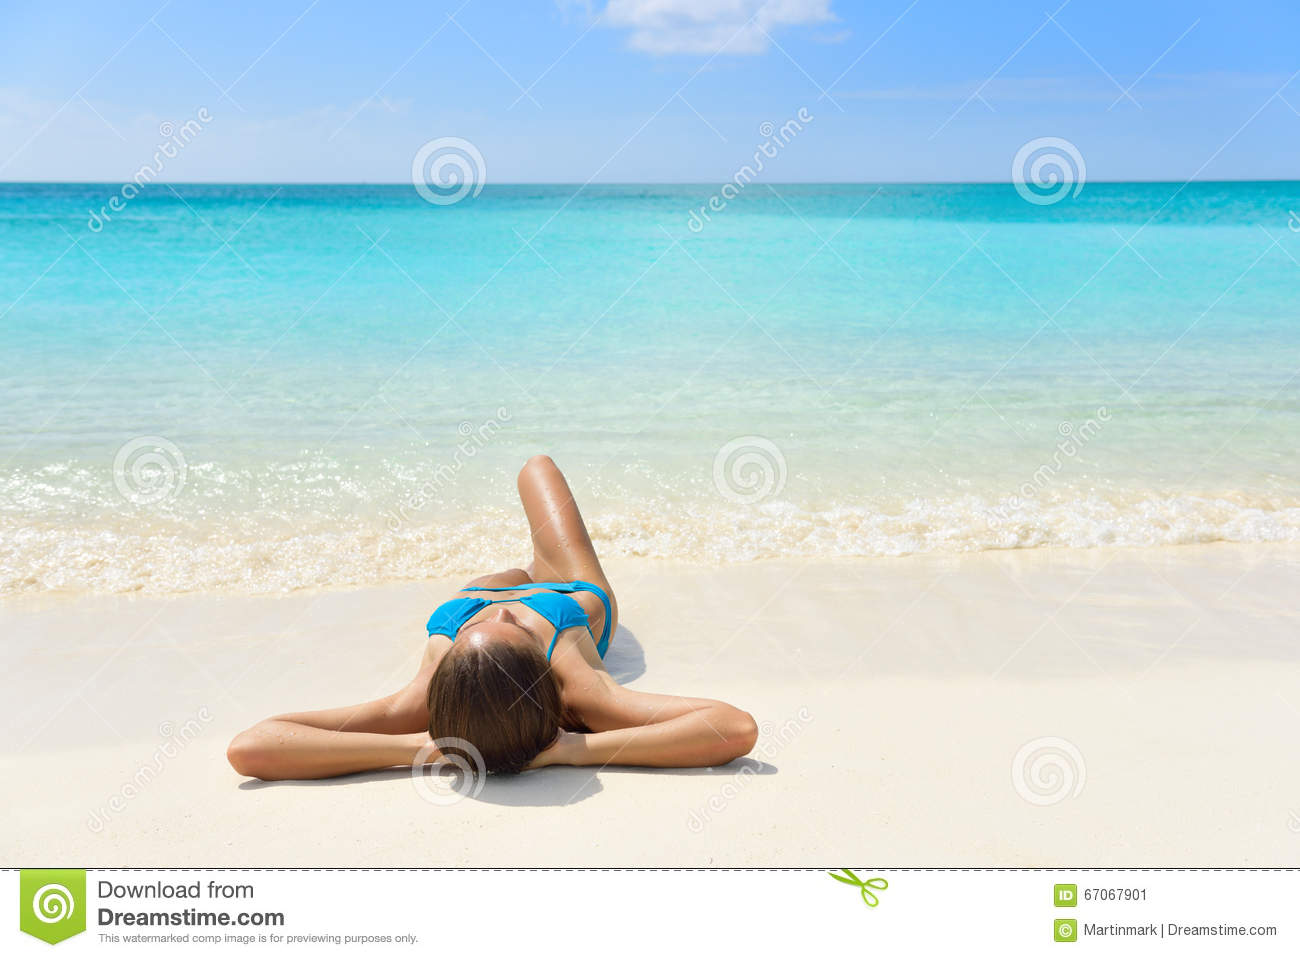 Caribbean beach vacation - suntan relaxation woman